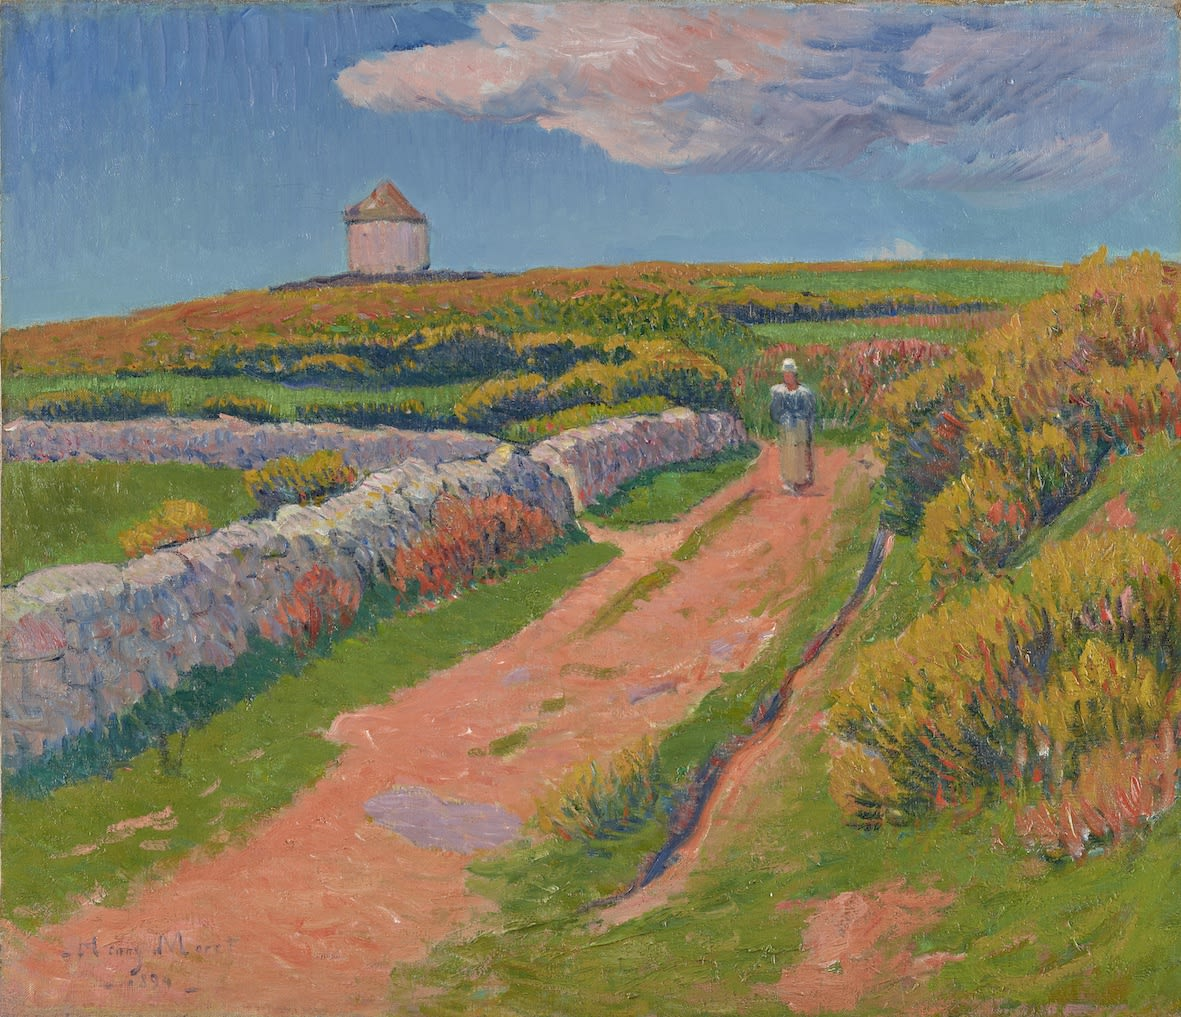 "<span class=""link fancybox-details-link""><a href=""/exhibitions/6/works/artworks_standalone9411/"">View Detail Page</a></span><div class=""signed_and_dated"">Signed and dated lower left Henry Moret 1894</div>